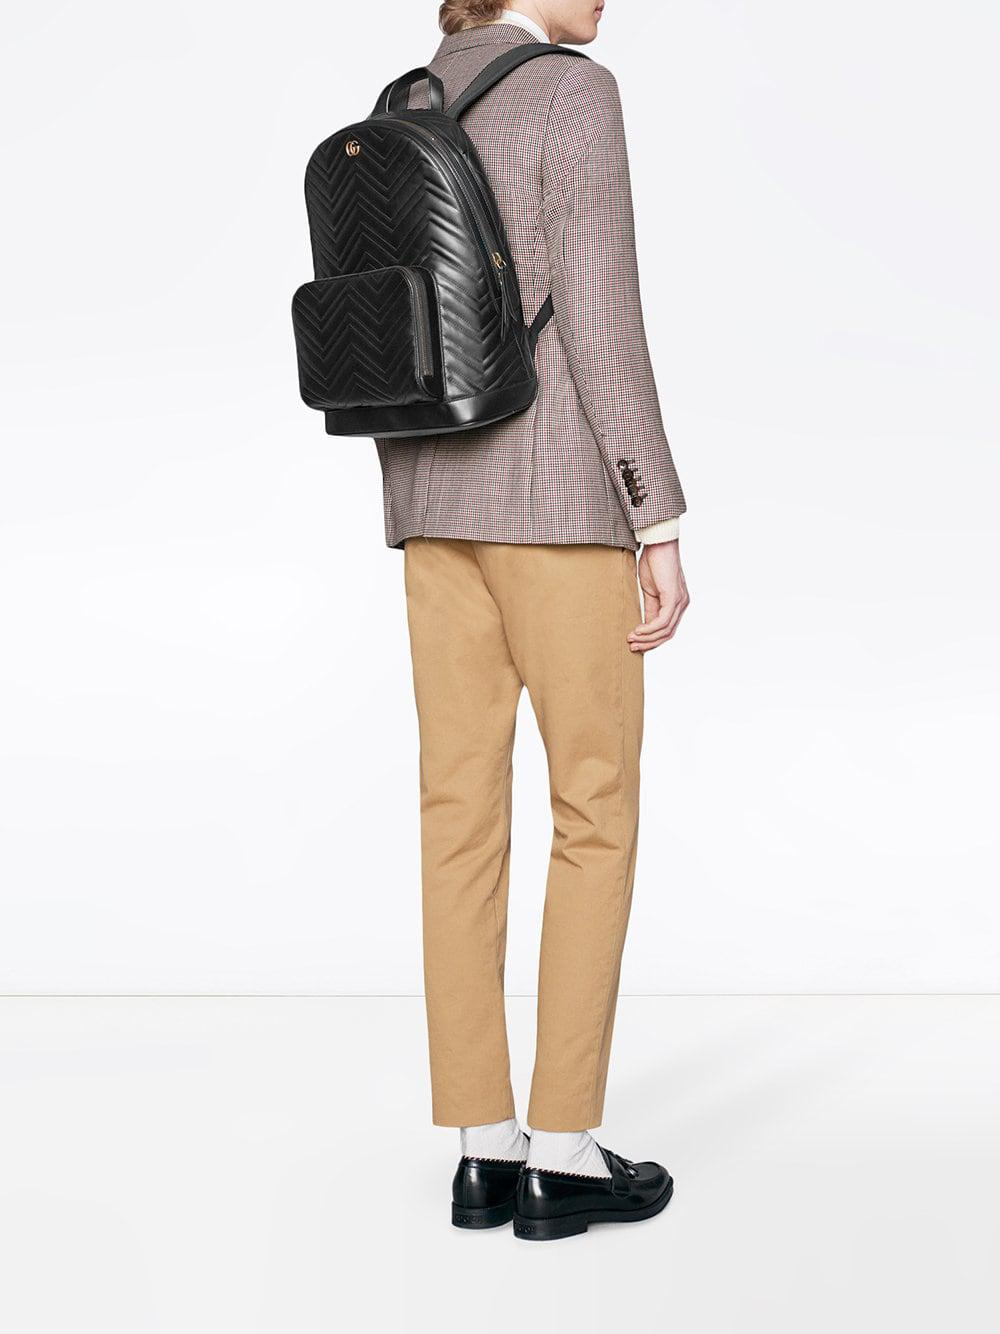 Lyst - Gucci GG Marmont Matelassé Backpack in Black for Men - Save 22% f70a4b490e3e2